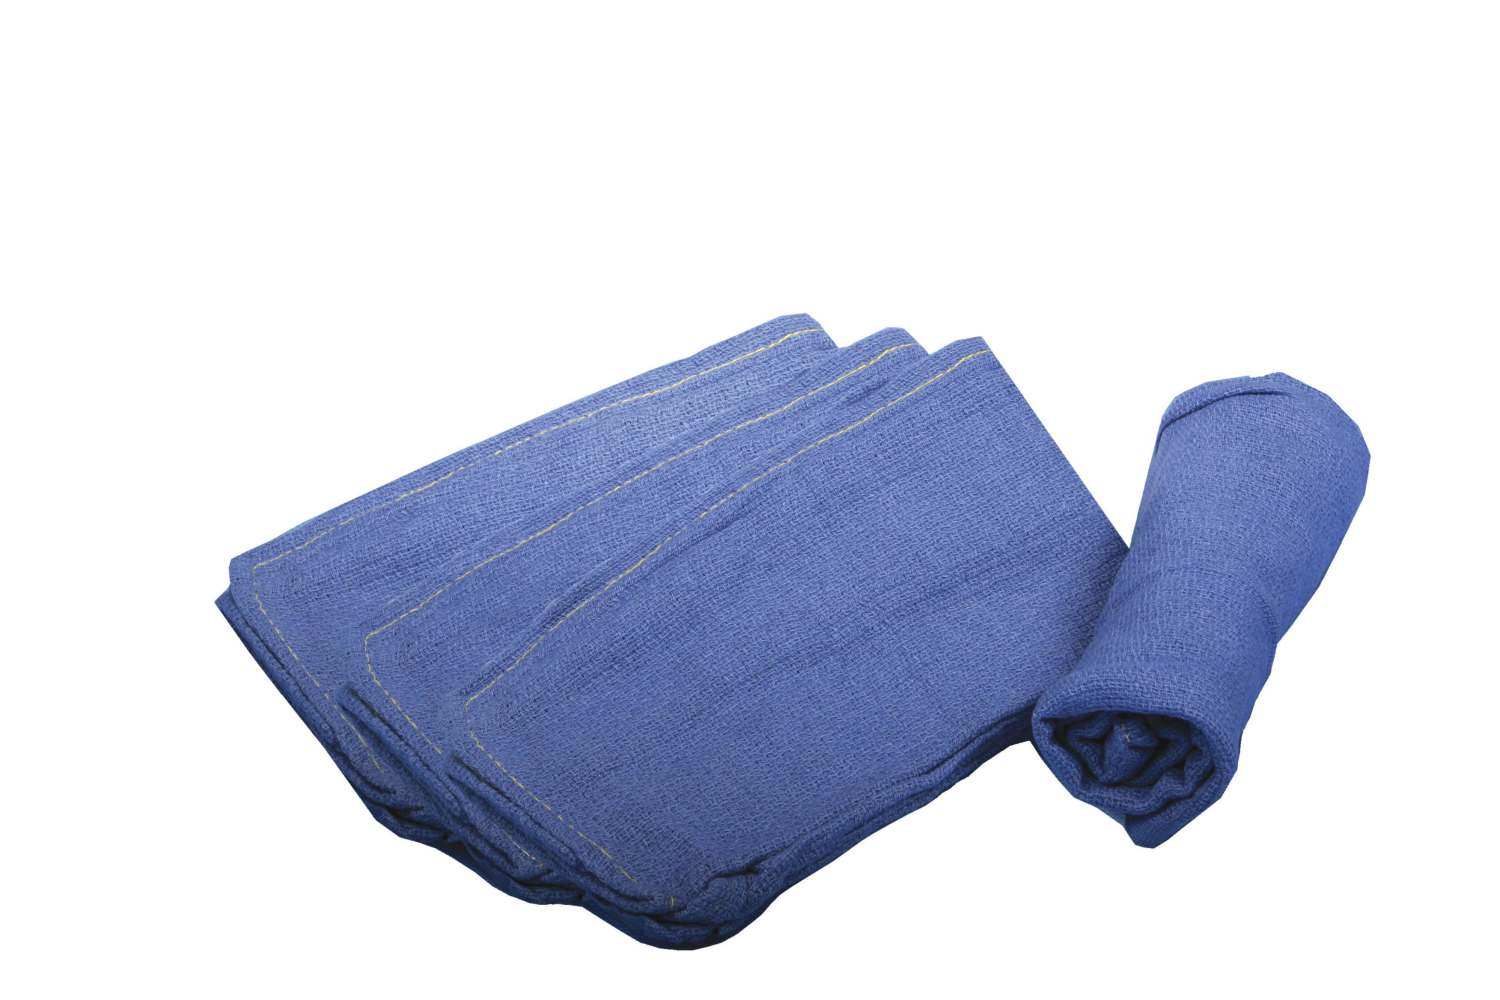 Non-Sterile Disposable X-Ray Detectable OR Towel - Dsp, Ns, Blue, Xr, Bulk, Box of 100